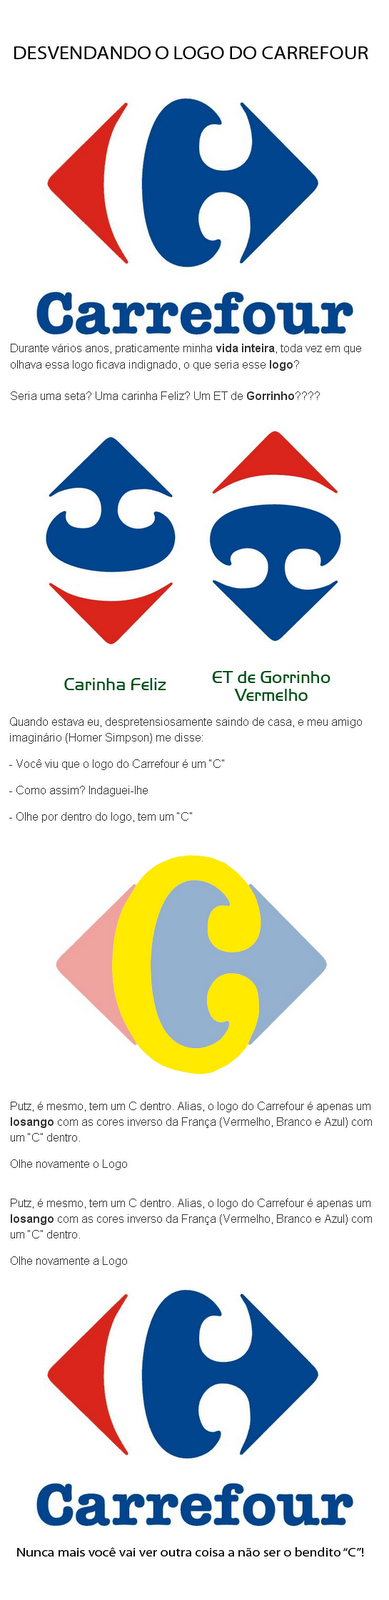 [LOGO_CARREFOUR.png]